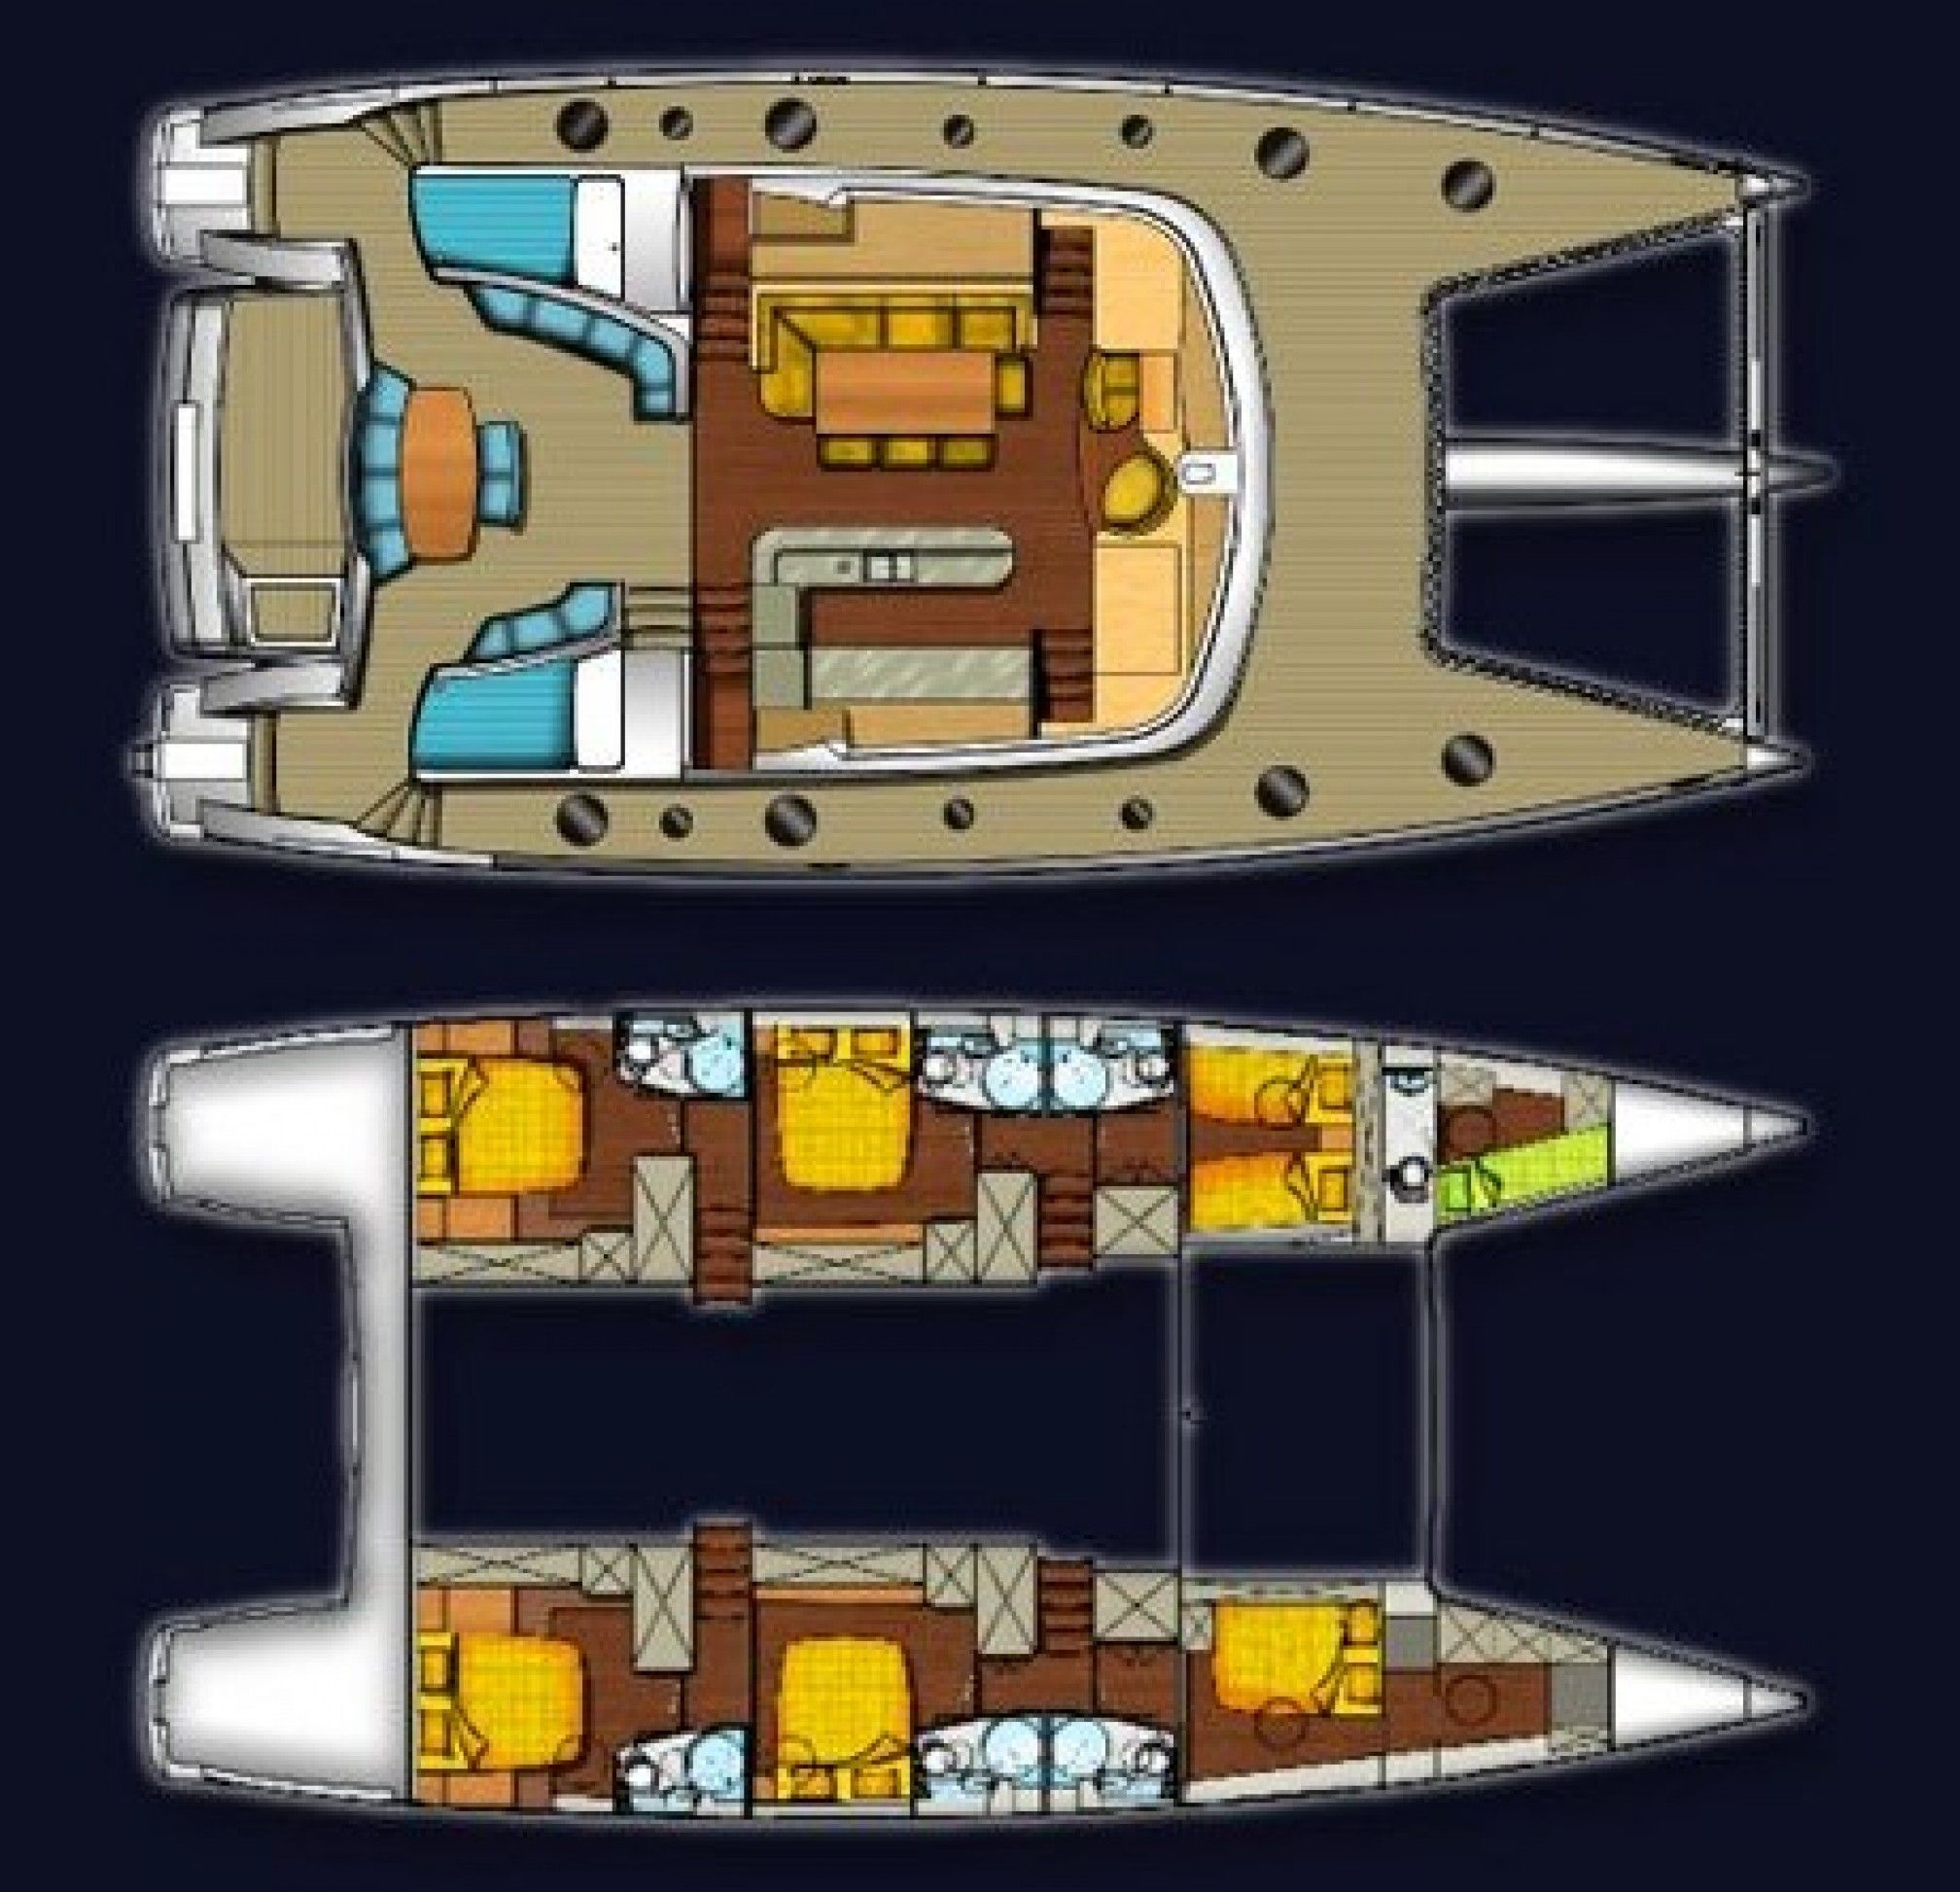 MobyDick Luxury Catamaran Layout